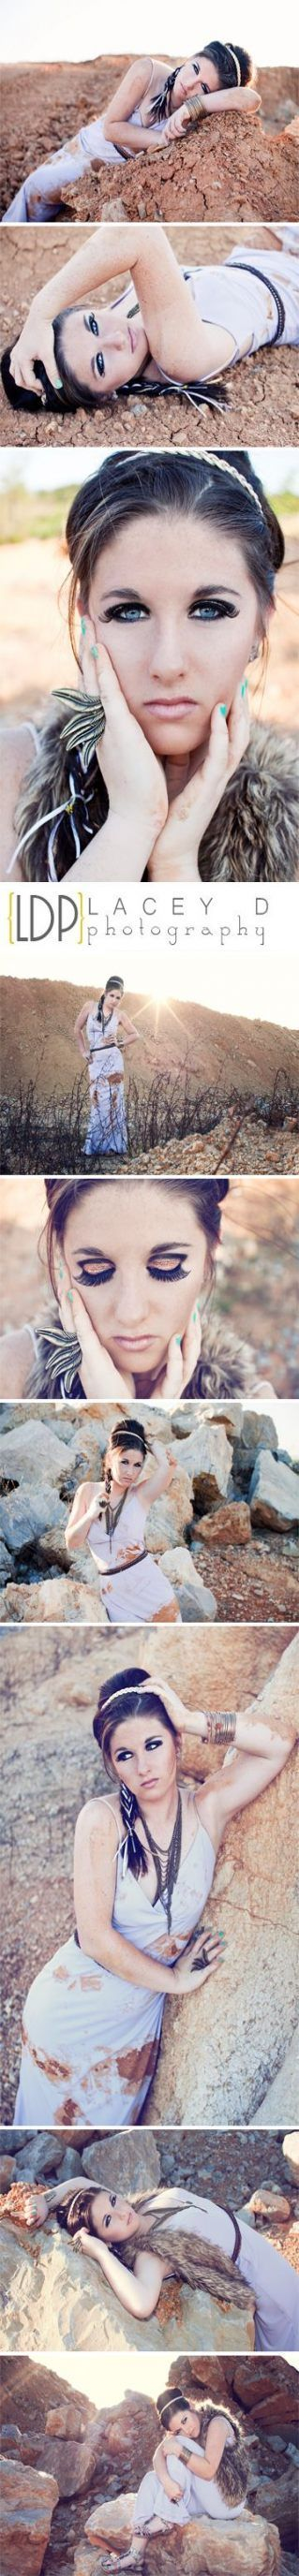 Super Photography Poses For Teens Girls Hats 48+ Ideas - #promphotographyposes